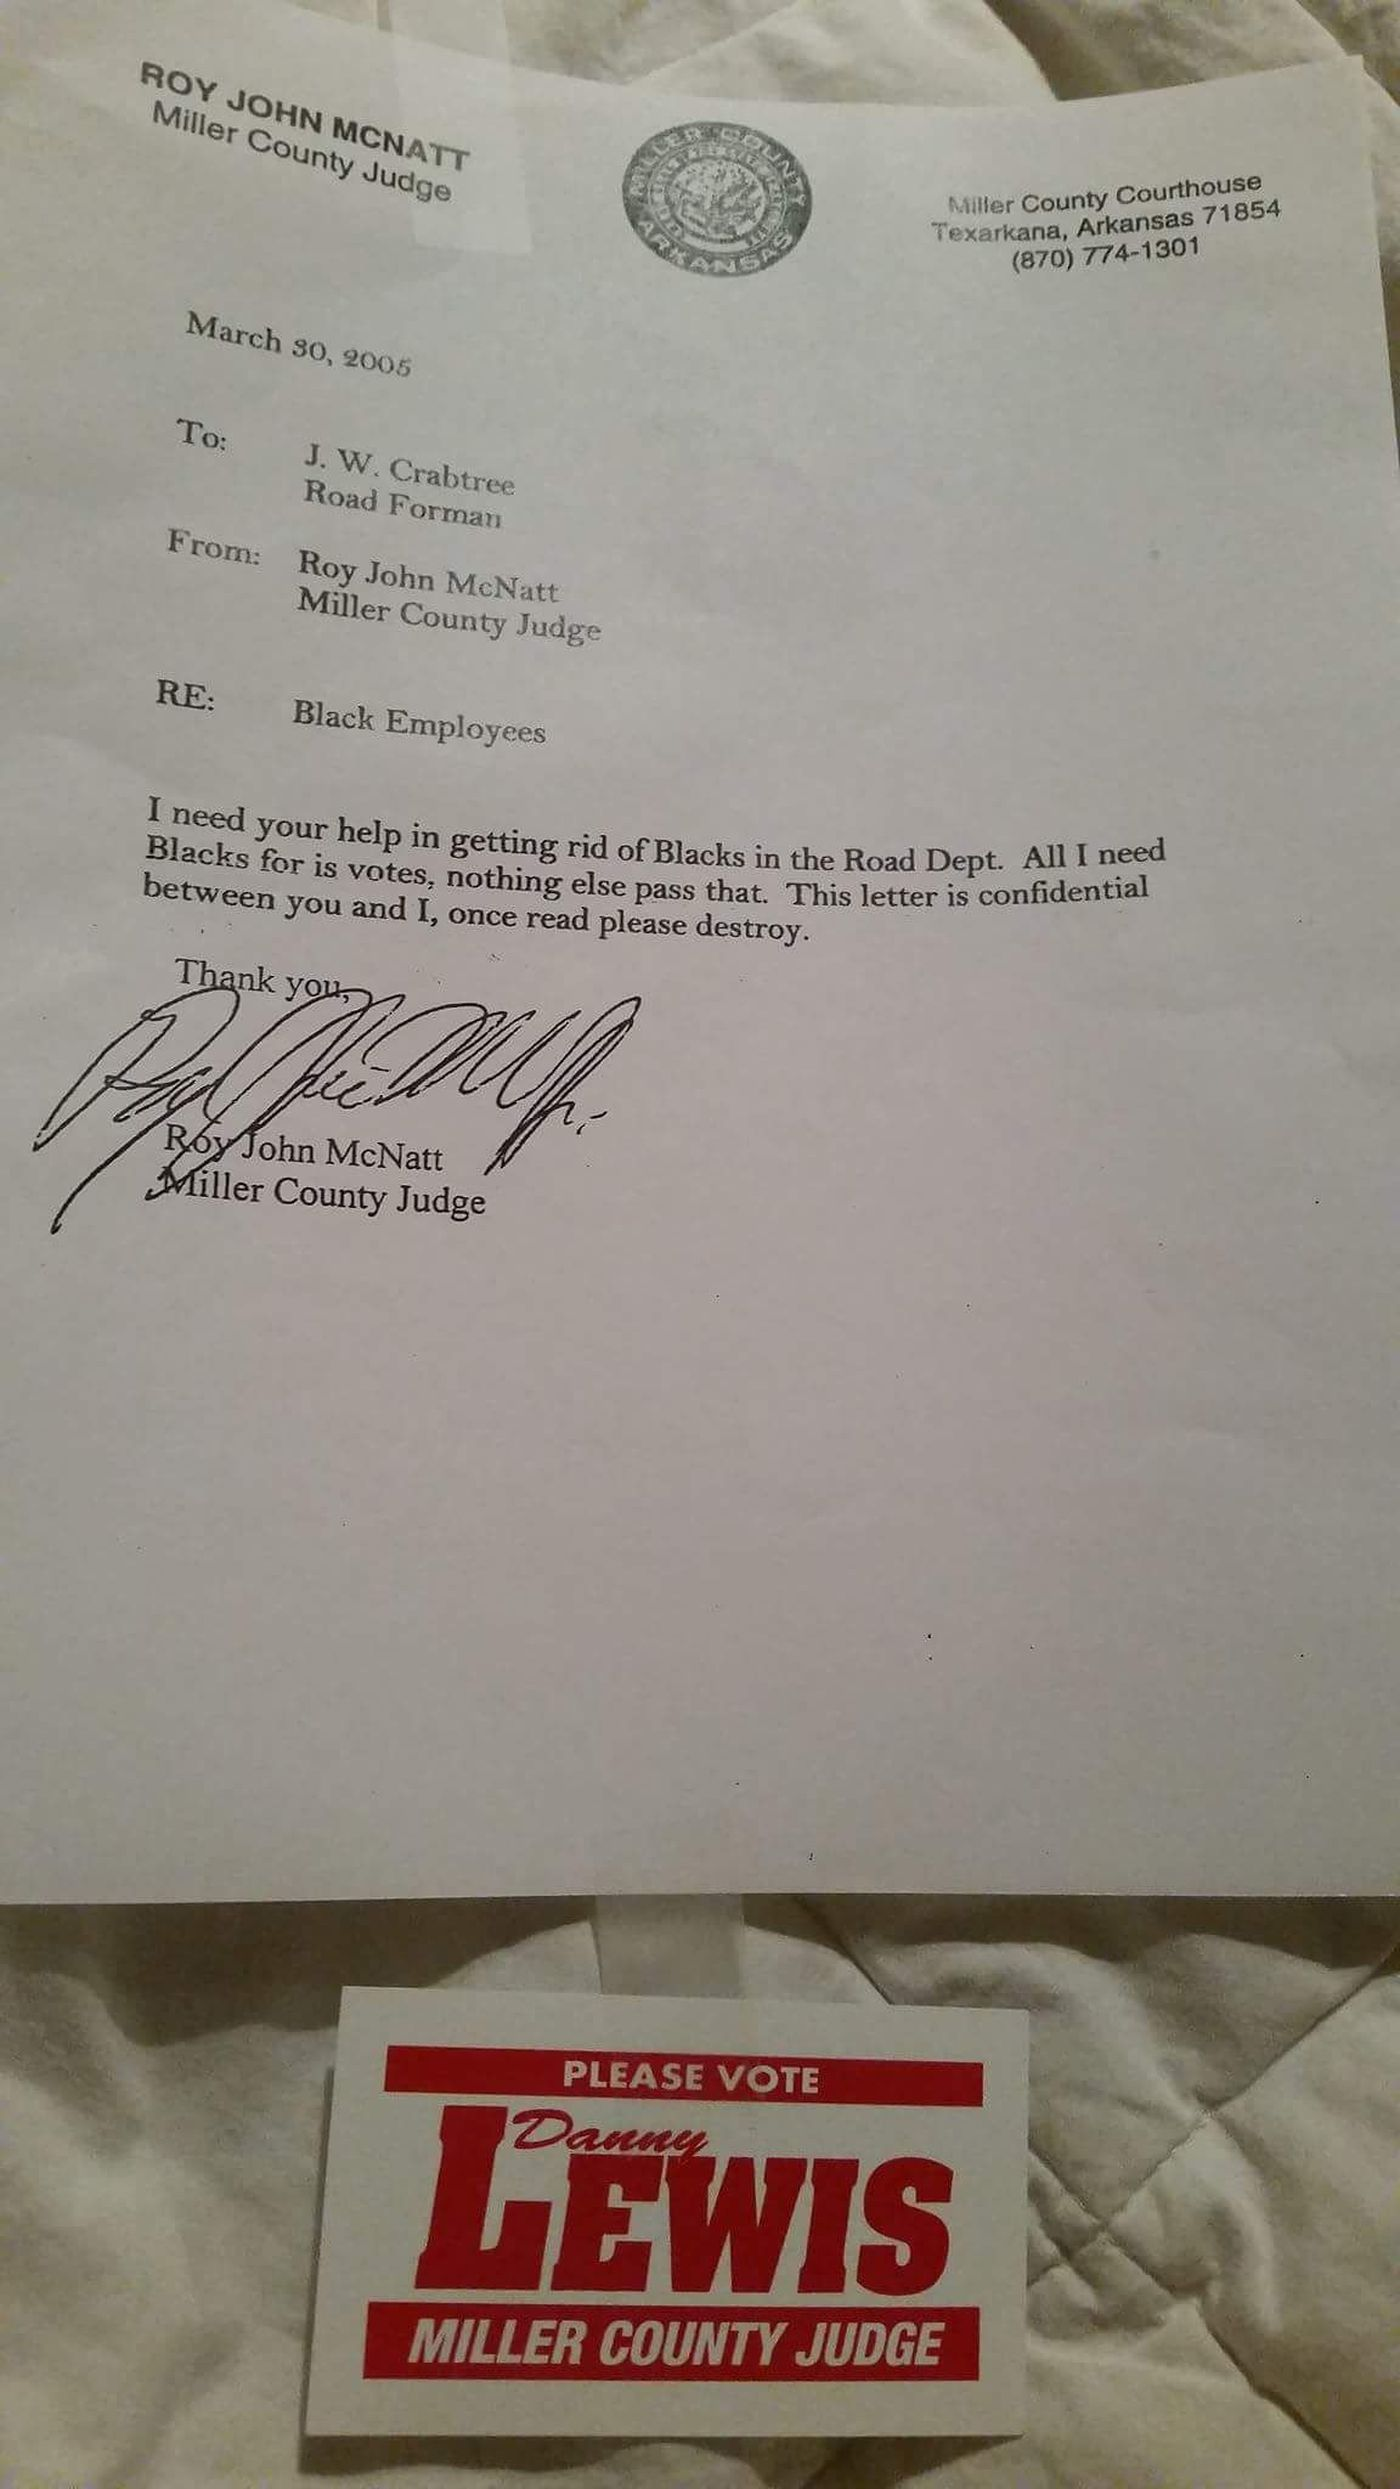 Bogus letters could sway Miller County voters